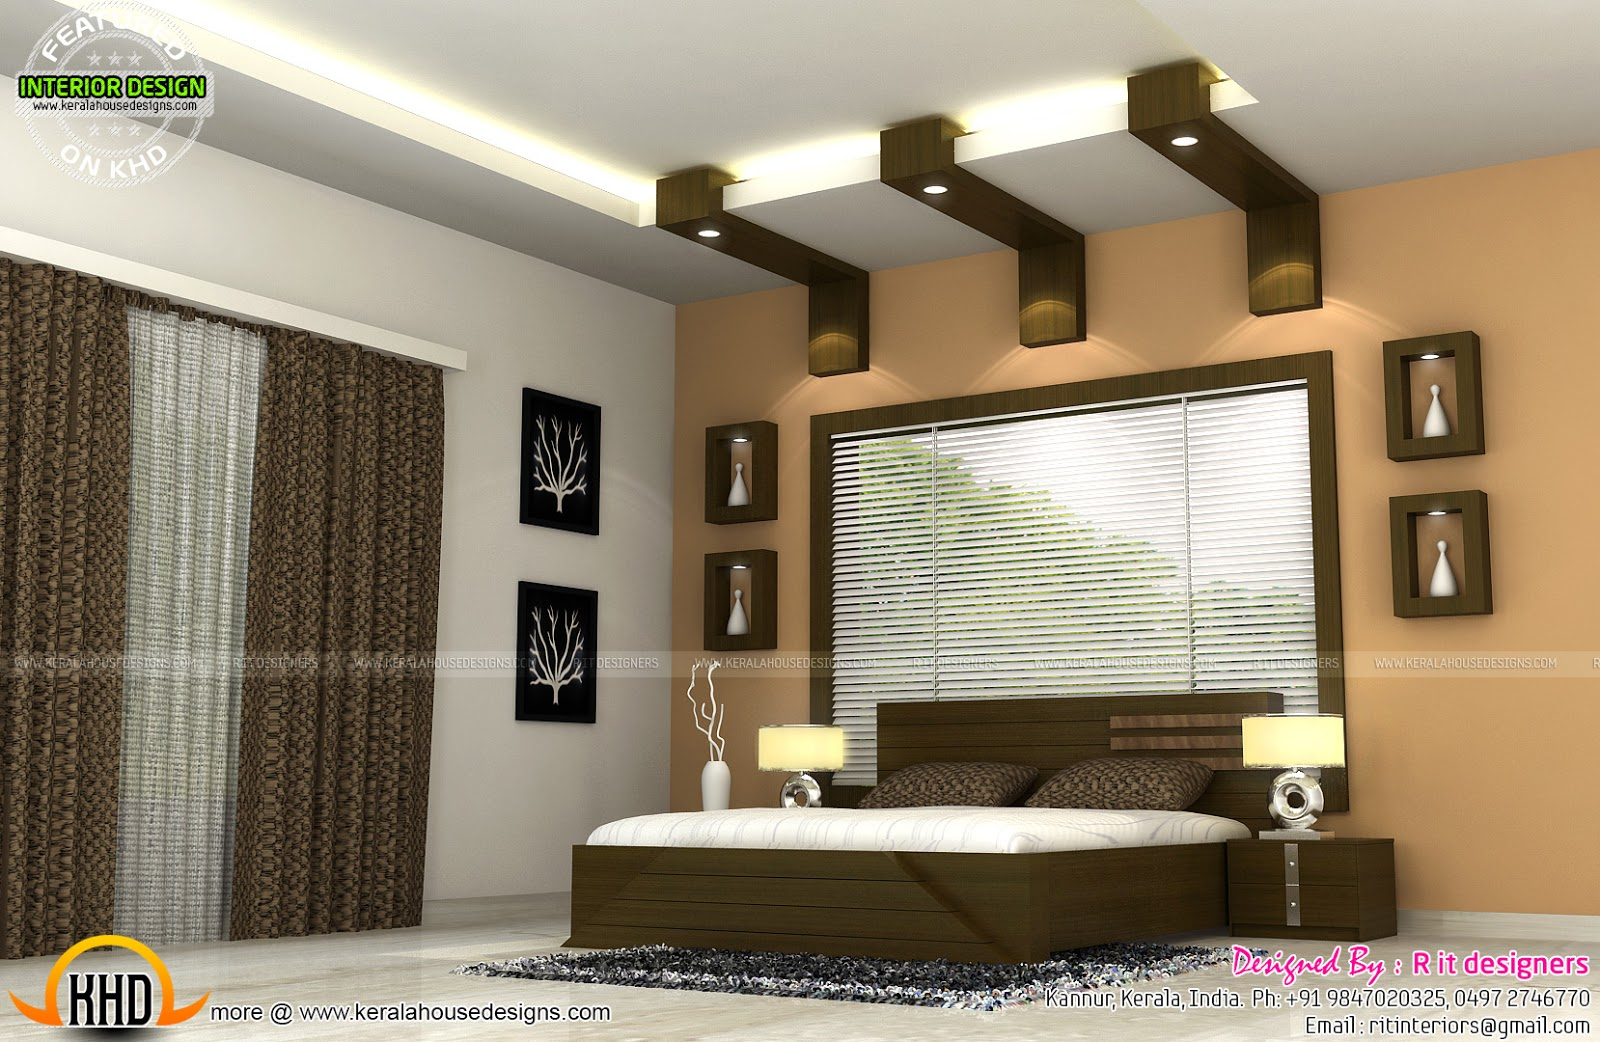 Interiors of bedrooms and kitchen kerala home design and for Inside home design pictures